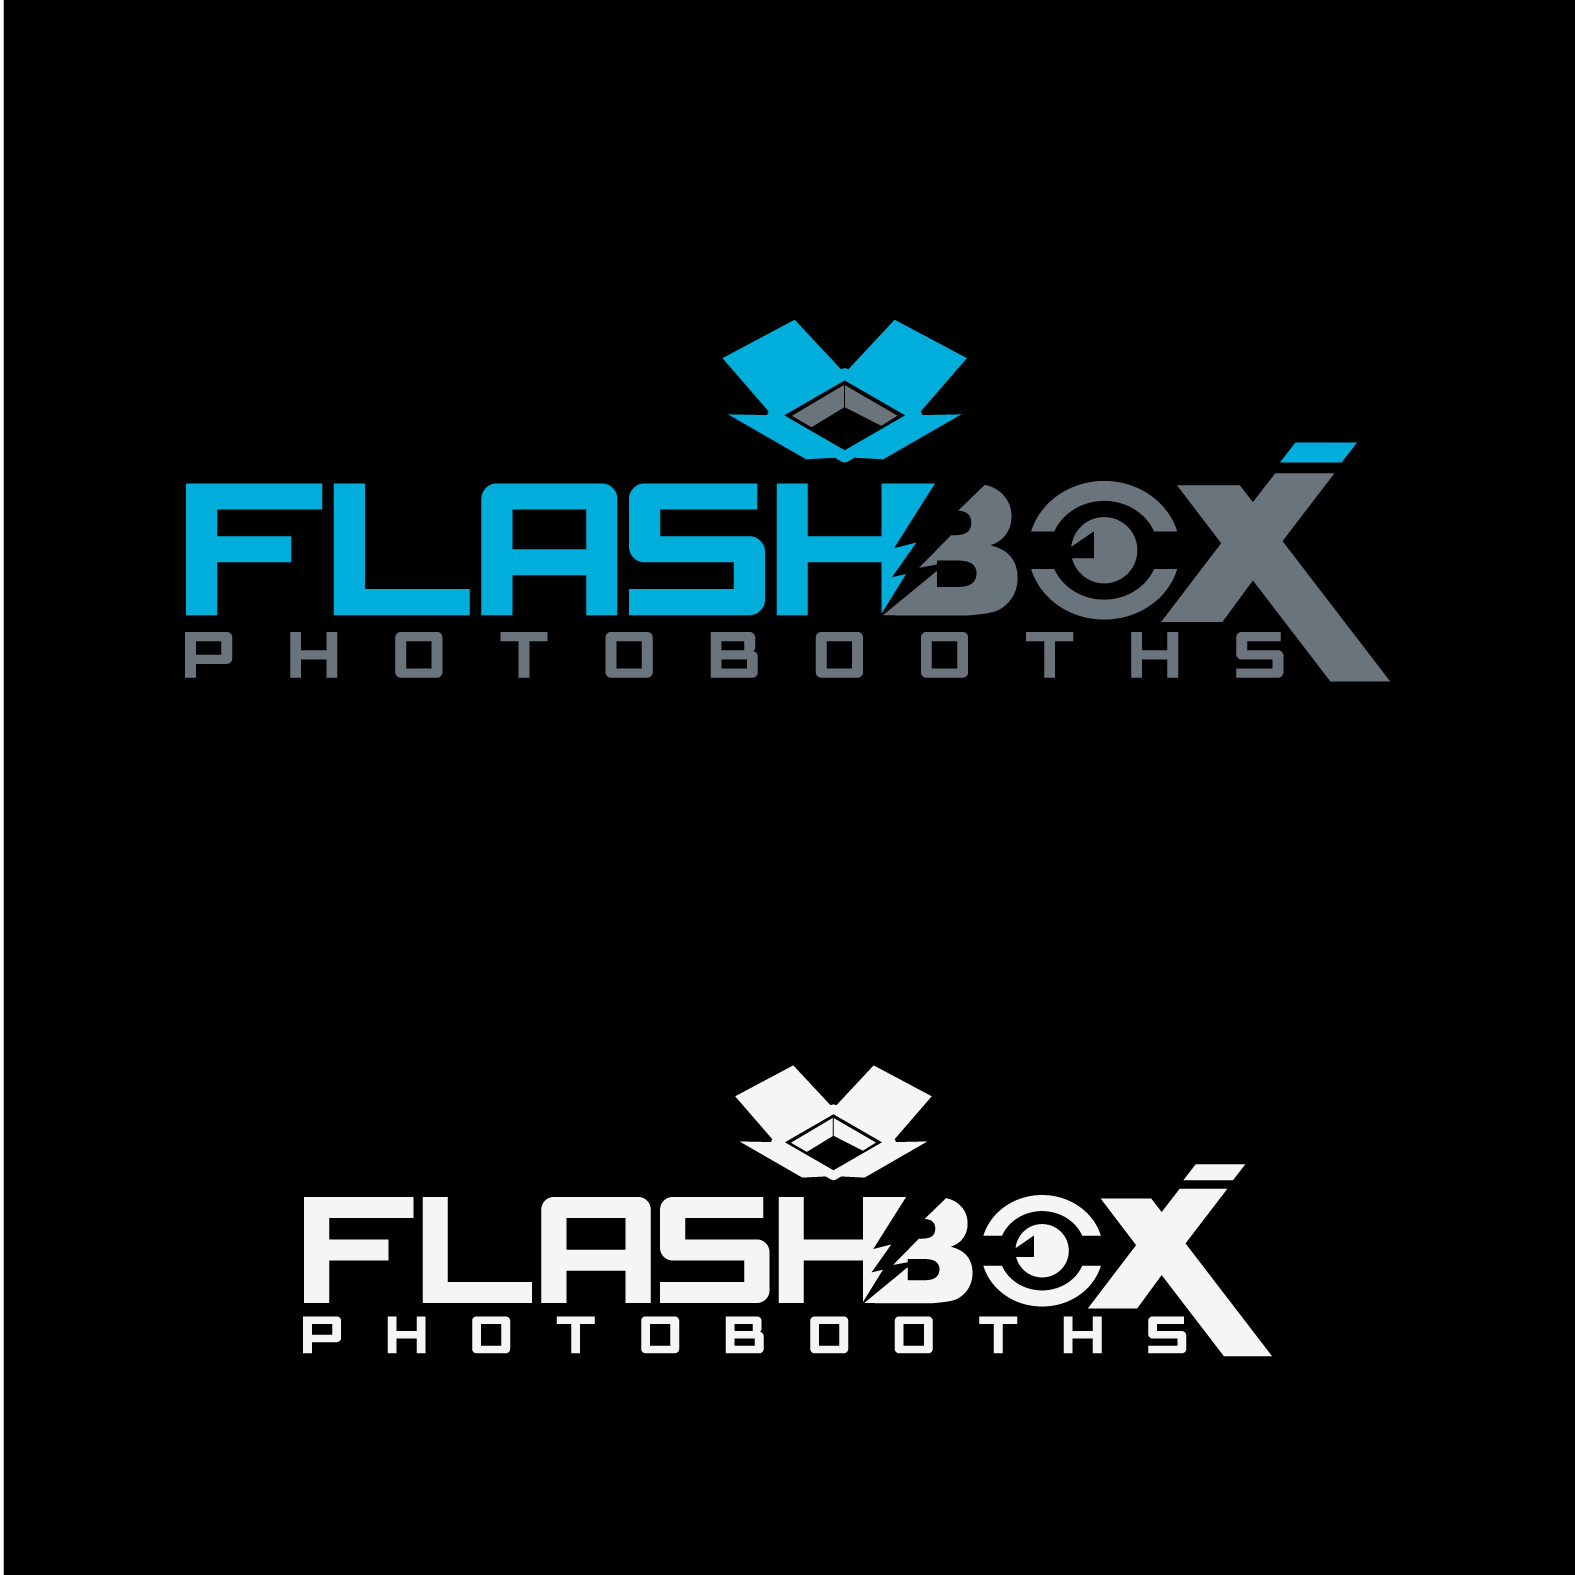 Logo Design by lagalag - Entry No. 55 in the Logo Design Contest New Logo Design for FlashBox Photobooths.